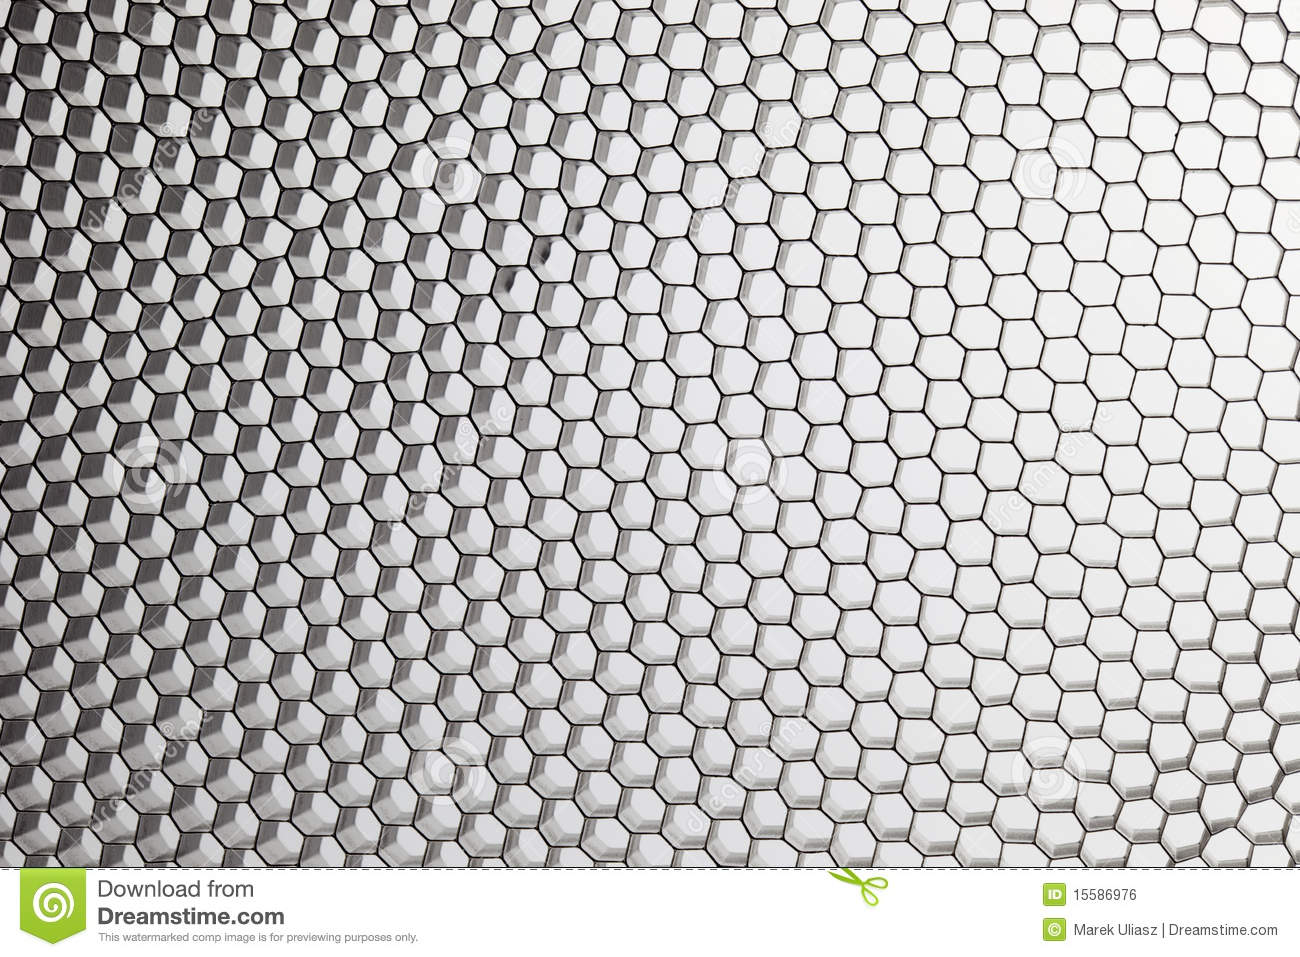 abstract honeycomb composition royalty - photo #10